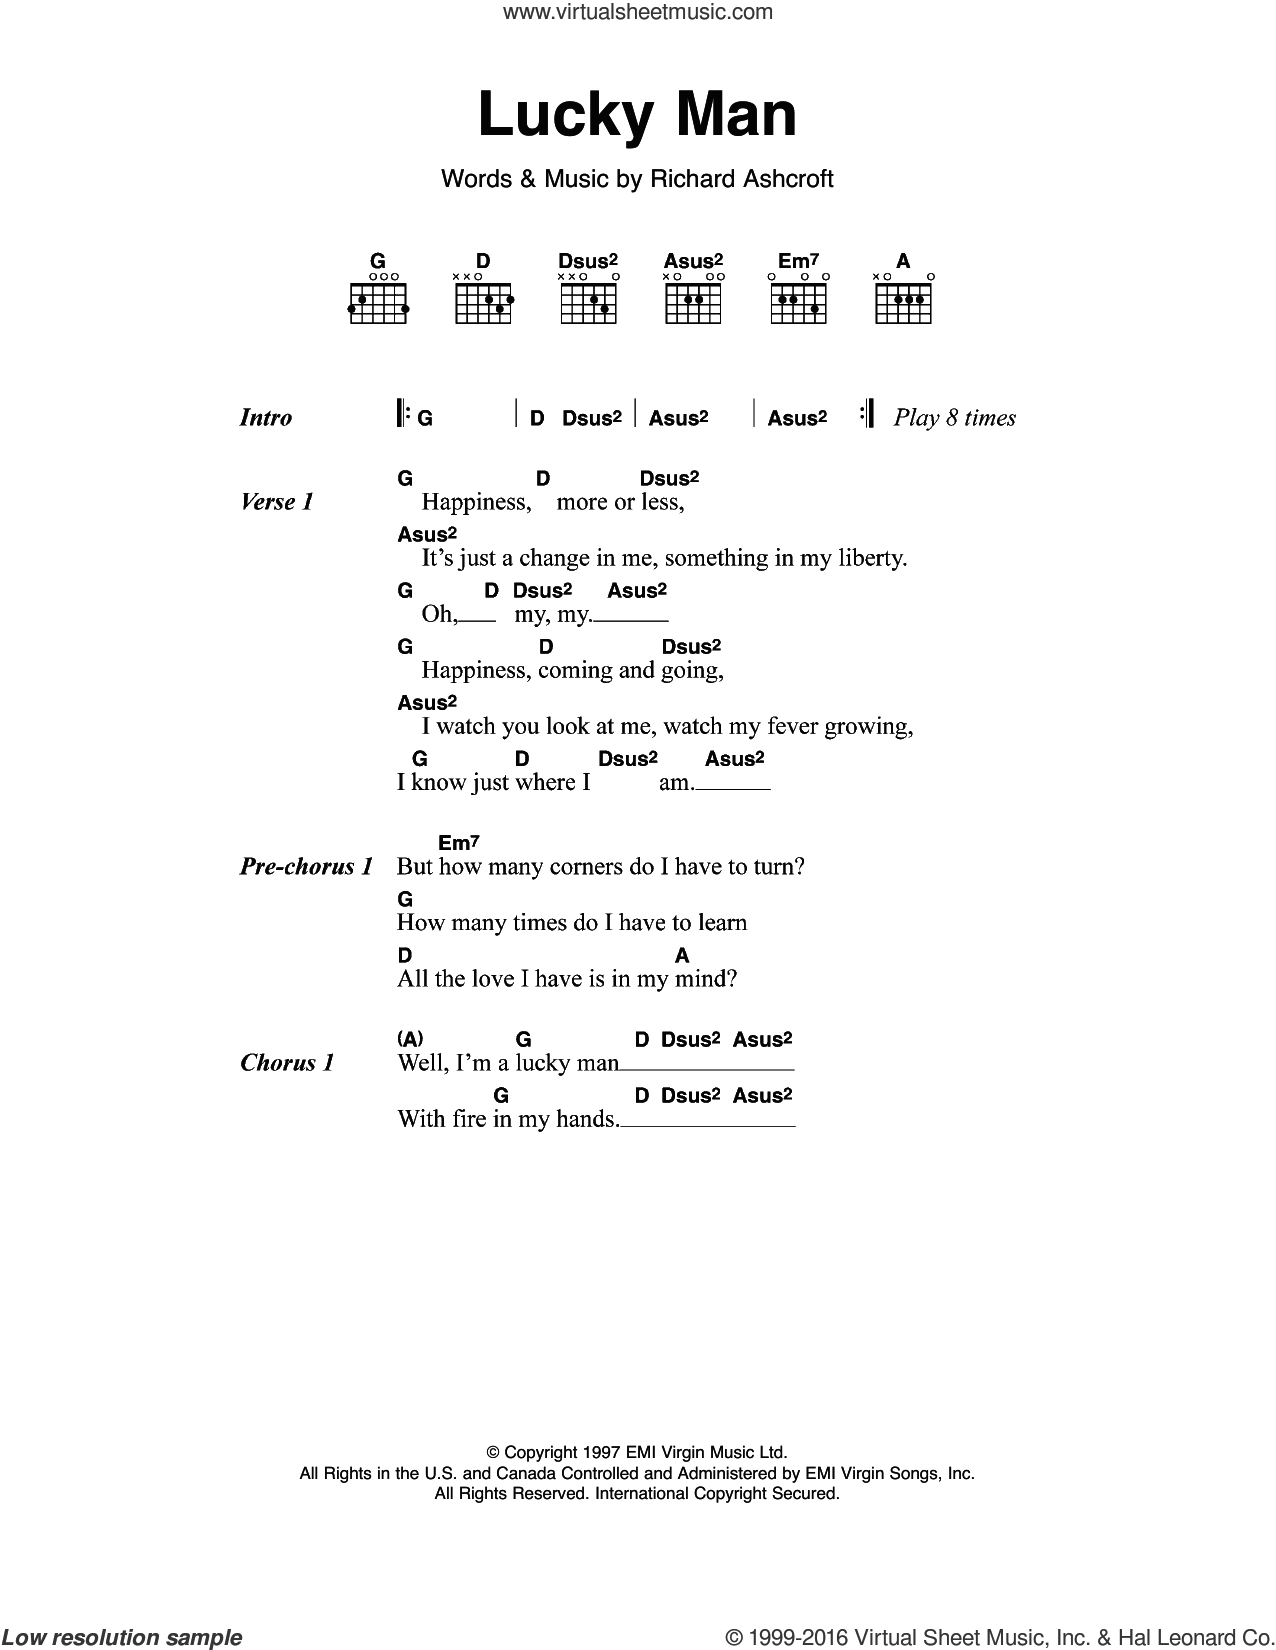 Lucky Man sheet music for guitar (chords) by The Verve and Richard Ashcroft, intermediate skill level